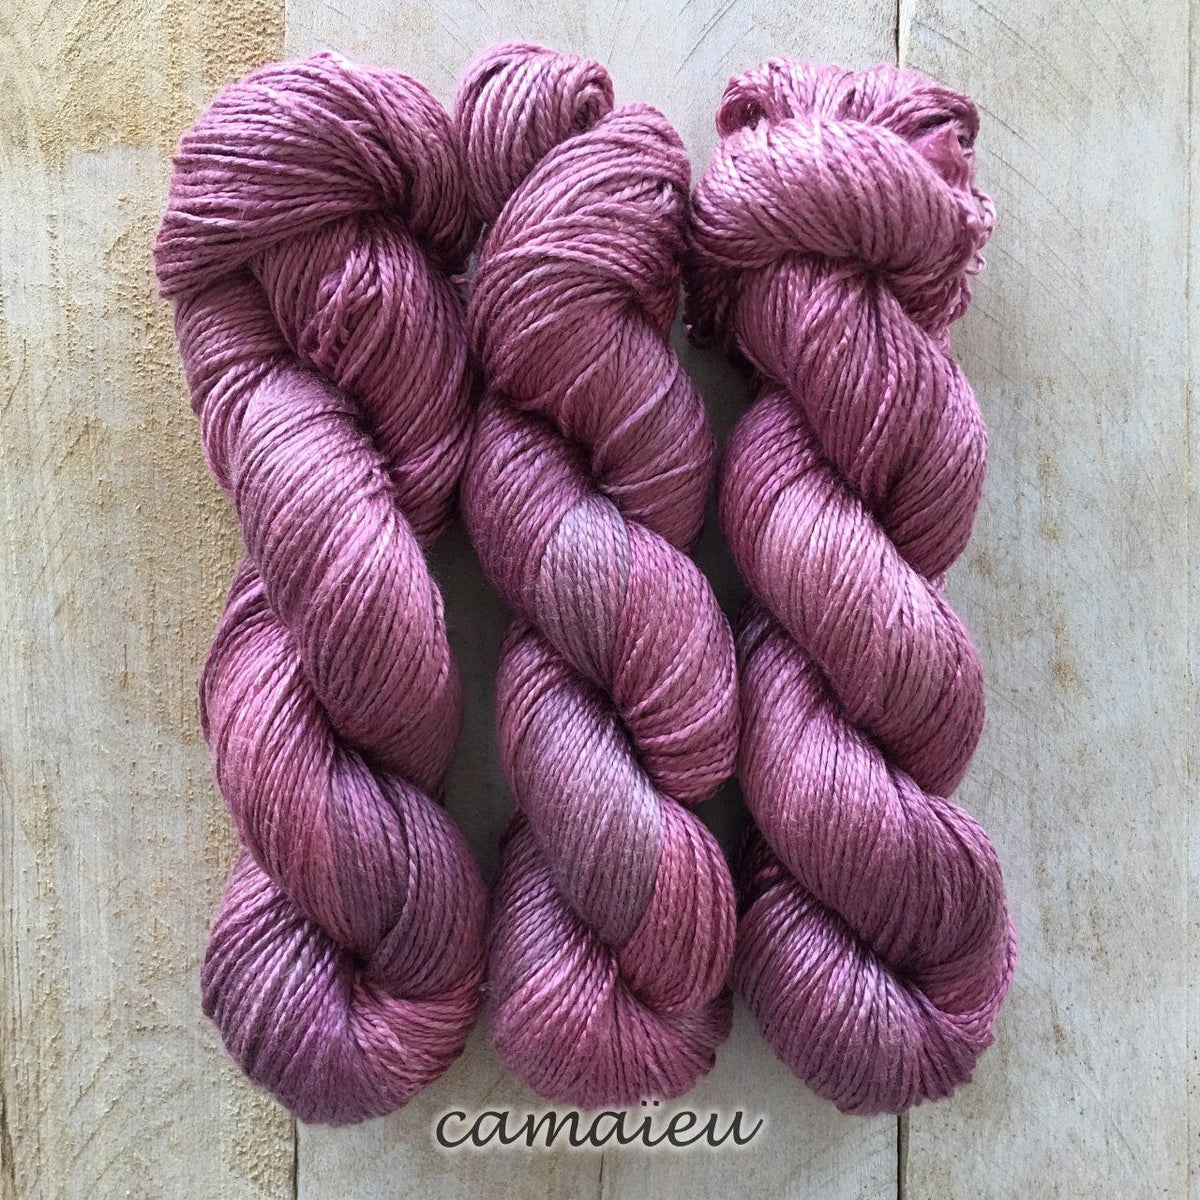 CAMAÏEU by Louise Robert Design | ALGUA MARINA hand-dyed Variegated yarn